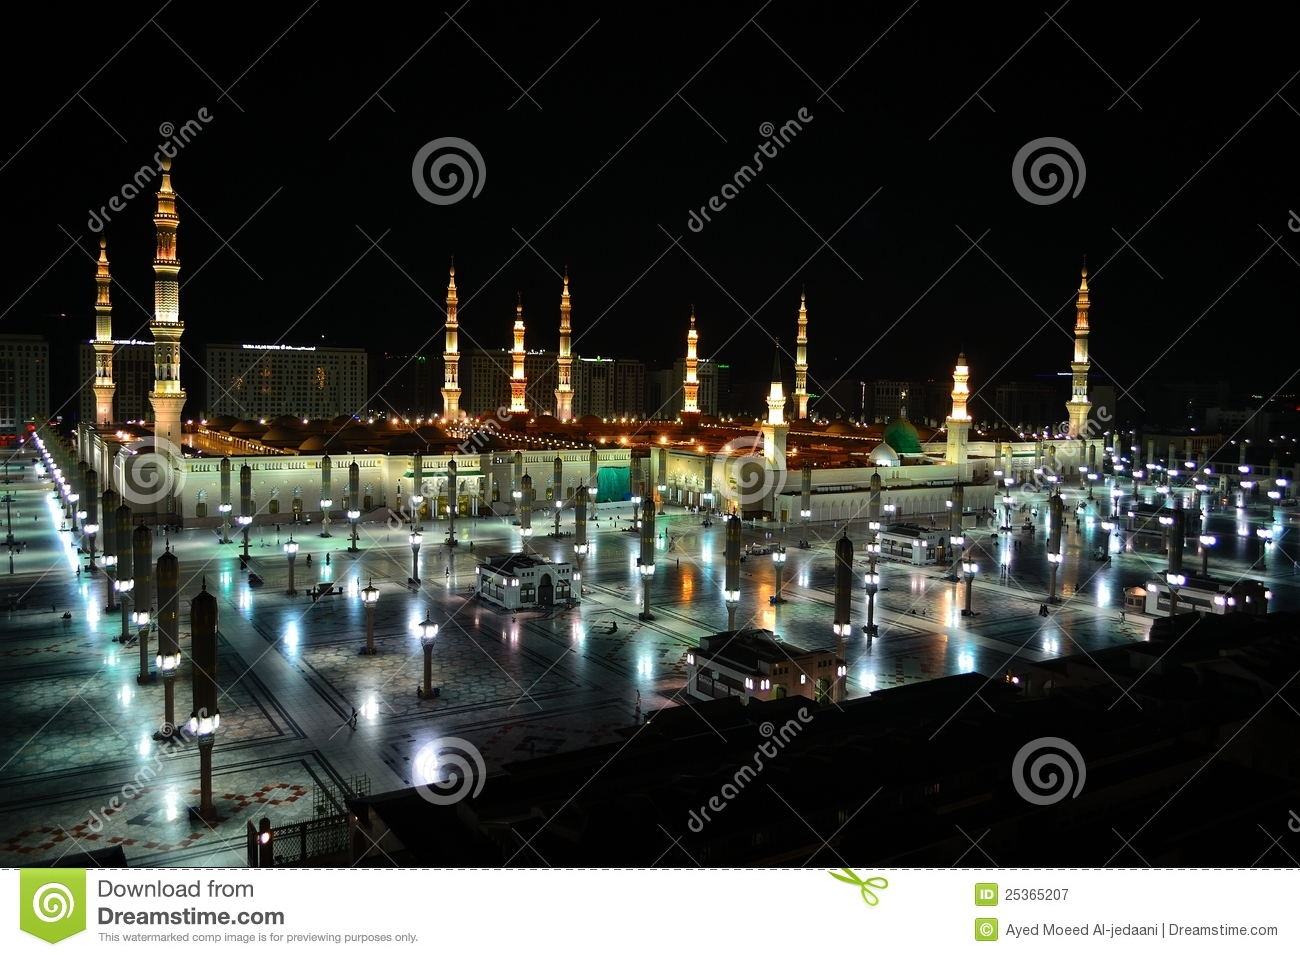 Nabawi Mosque in Medina at night time